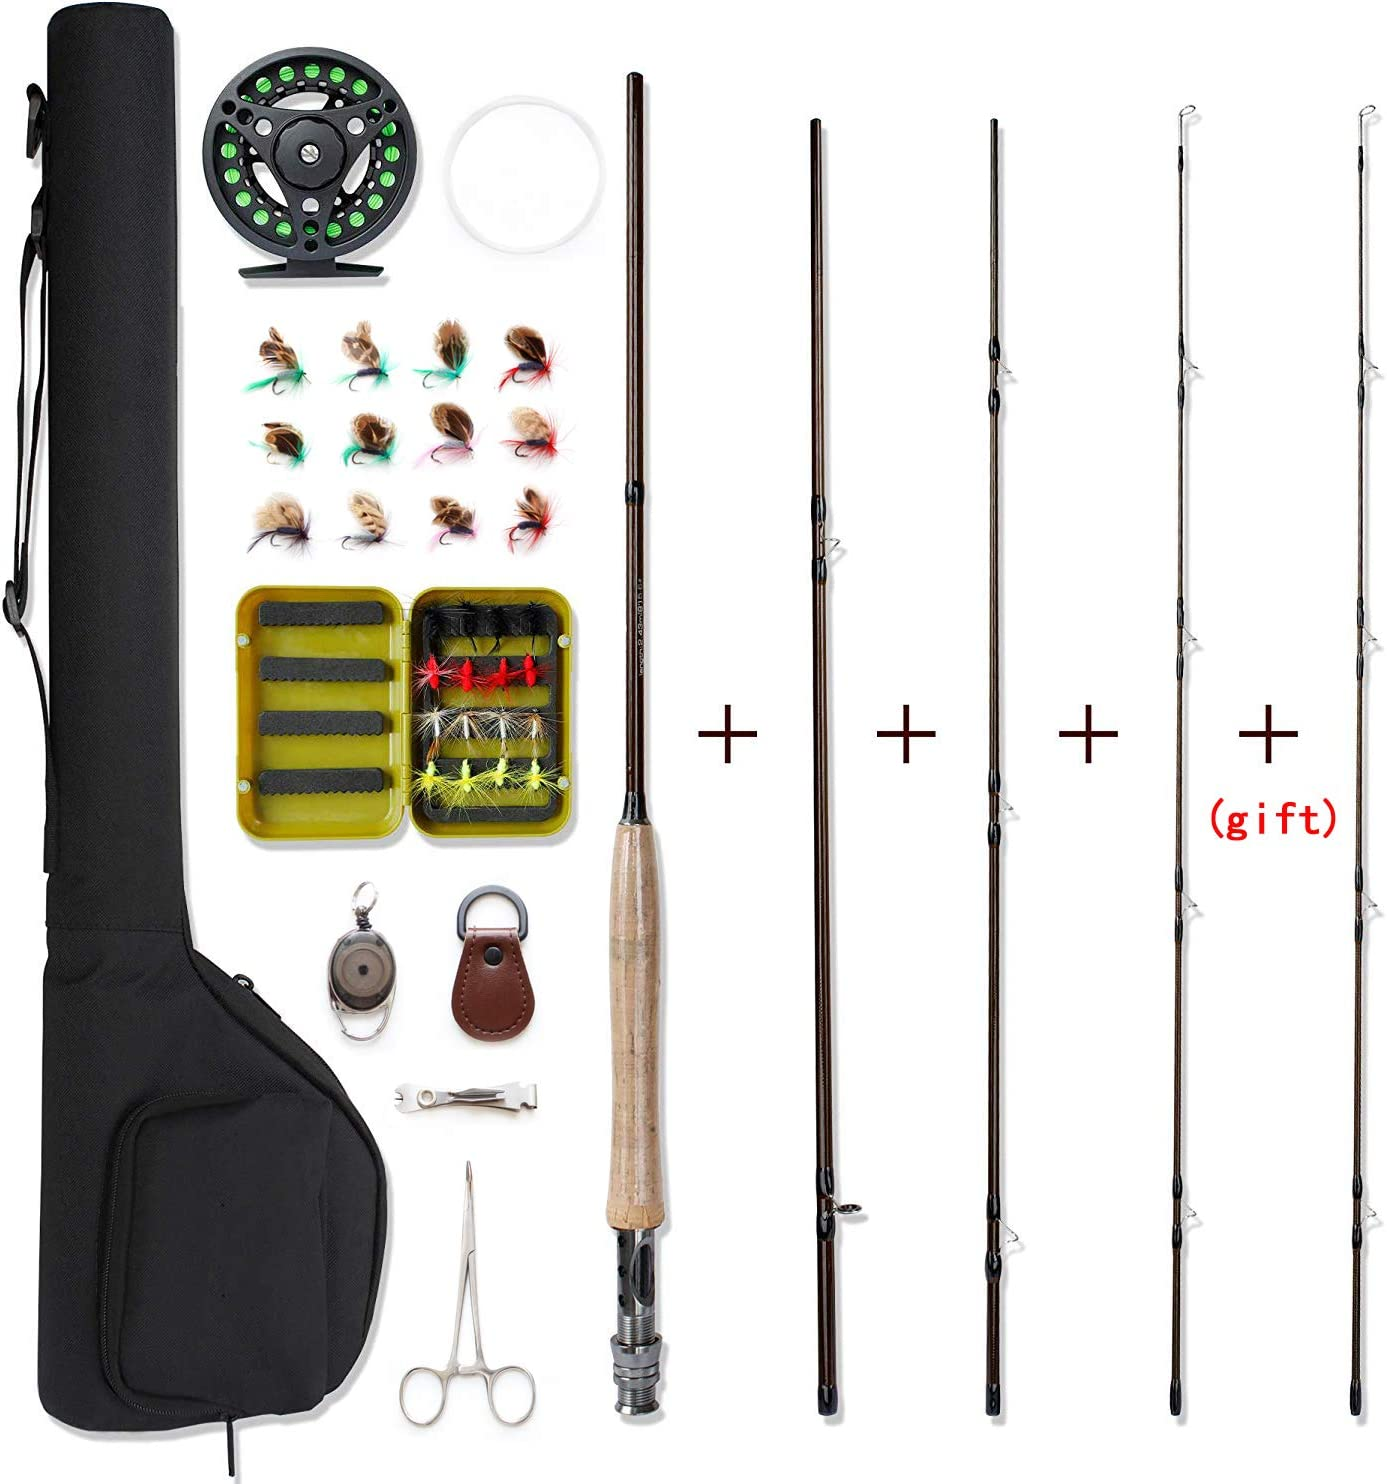 Amazon Com Netangler Fly Fishing Rod And Reel Combo 4 Piece Fly Fishing Rod 5wt Aluminum Fly Reel 28 Pieces Flies Kit With Free Rod Tip Backing And Cloth Carry Bag Sports